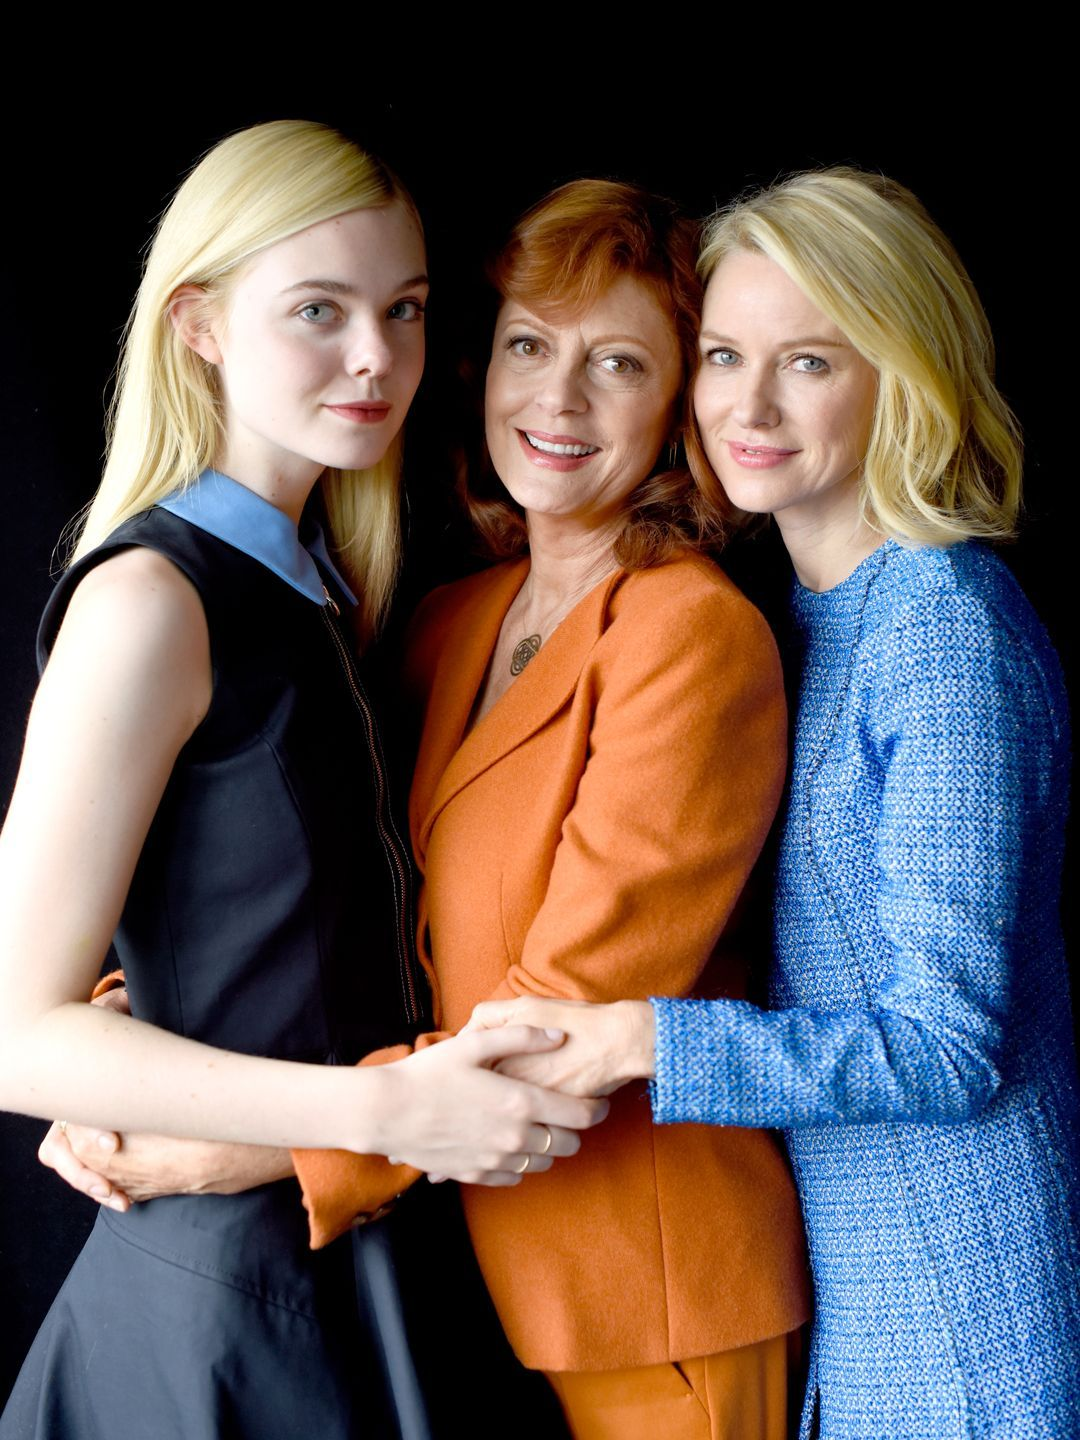 """About Ray"" cast members Elle Fanning, left, Susan Sarandon and Naomi Watts pose for a portrait at TIFF, Sunday. Jeff Vespa, Getty Images"